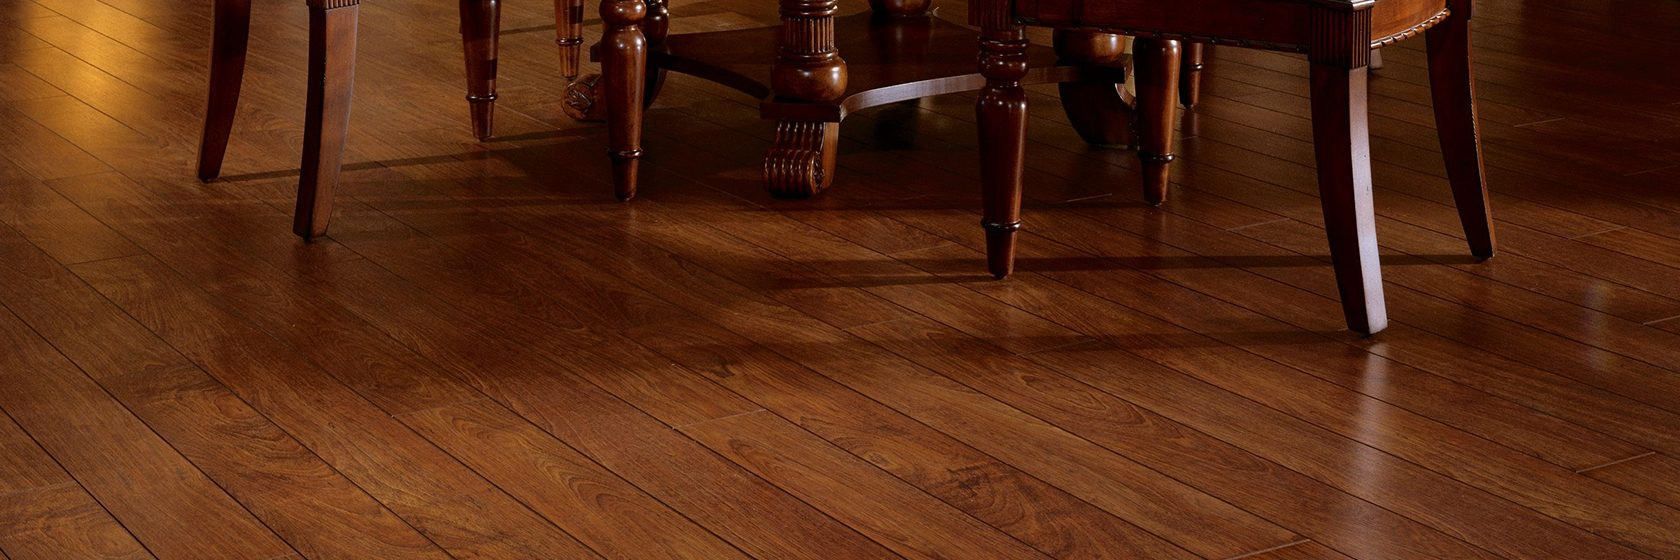 engineered hardwood flooring manufacturers of laminate exotic olive ash l8708 with regard to hero l 1680 560